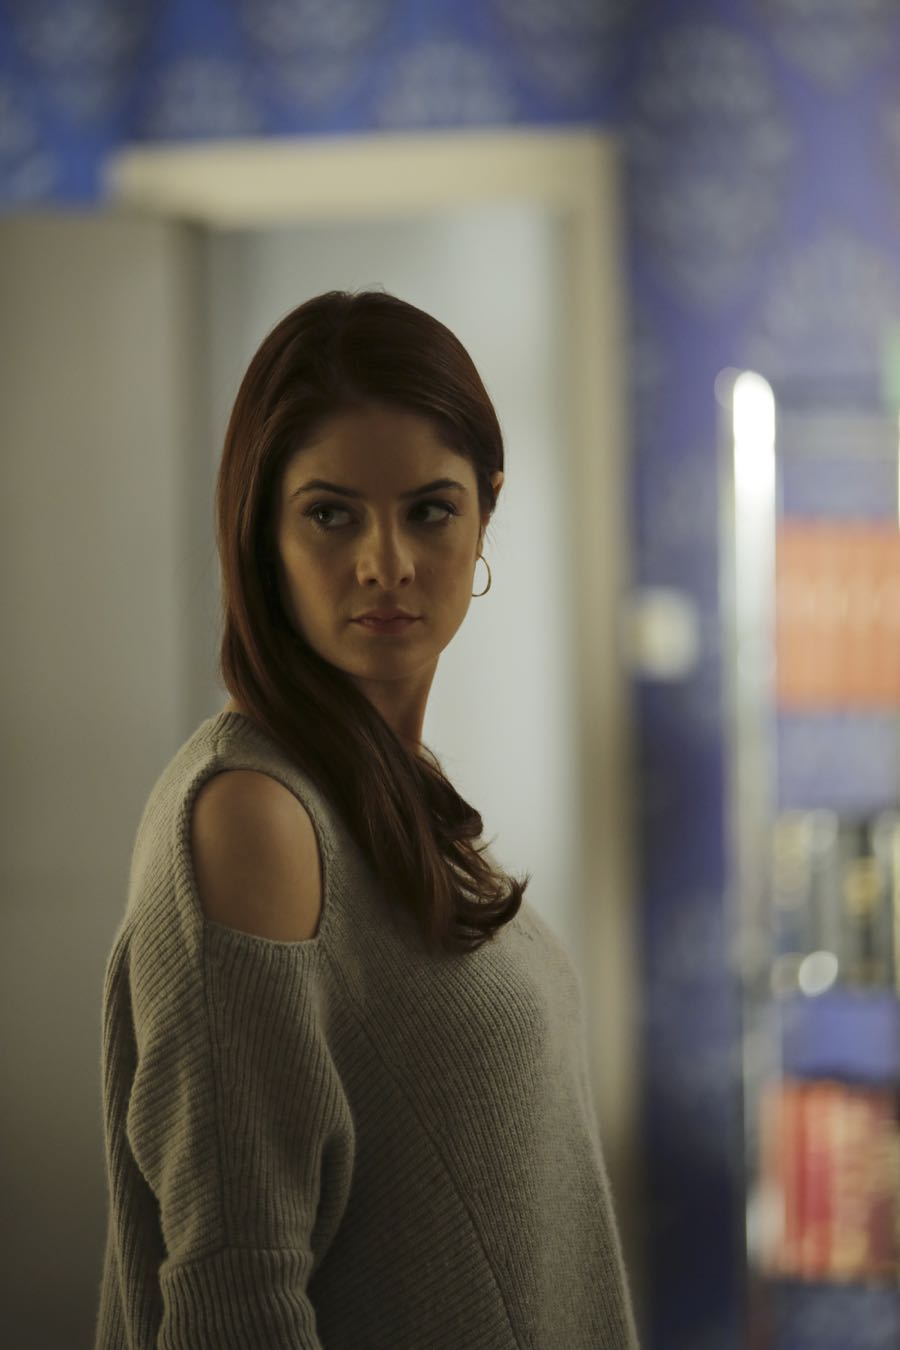 """GUILT - """"Exit Wounds"""" - Grace spirals after reading hateful remarks about herself on the internet, on an all-new episode of """"Guilt,"""" airing MONDAY, JUNE 27 (9:00 - 10:00 p.m. EDT), on Freeform. (Freeform/Angus Young) EMILY TREMAINE"""